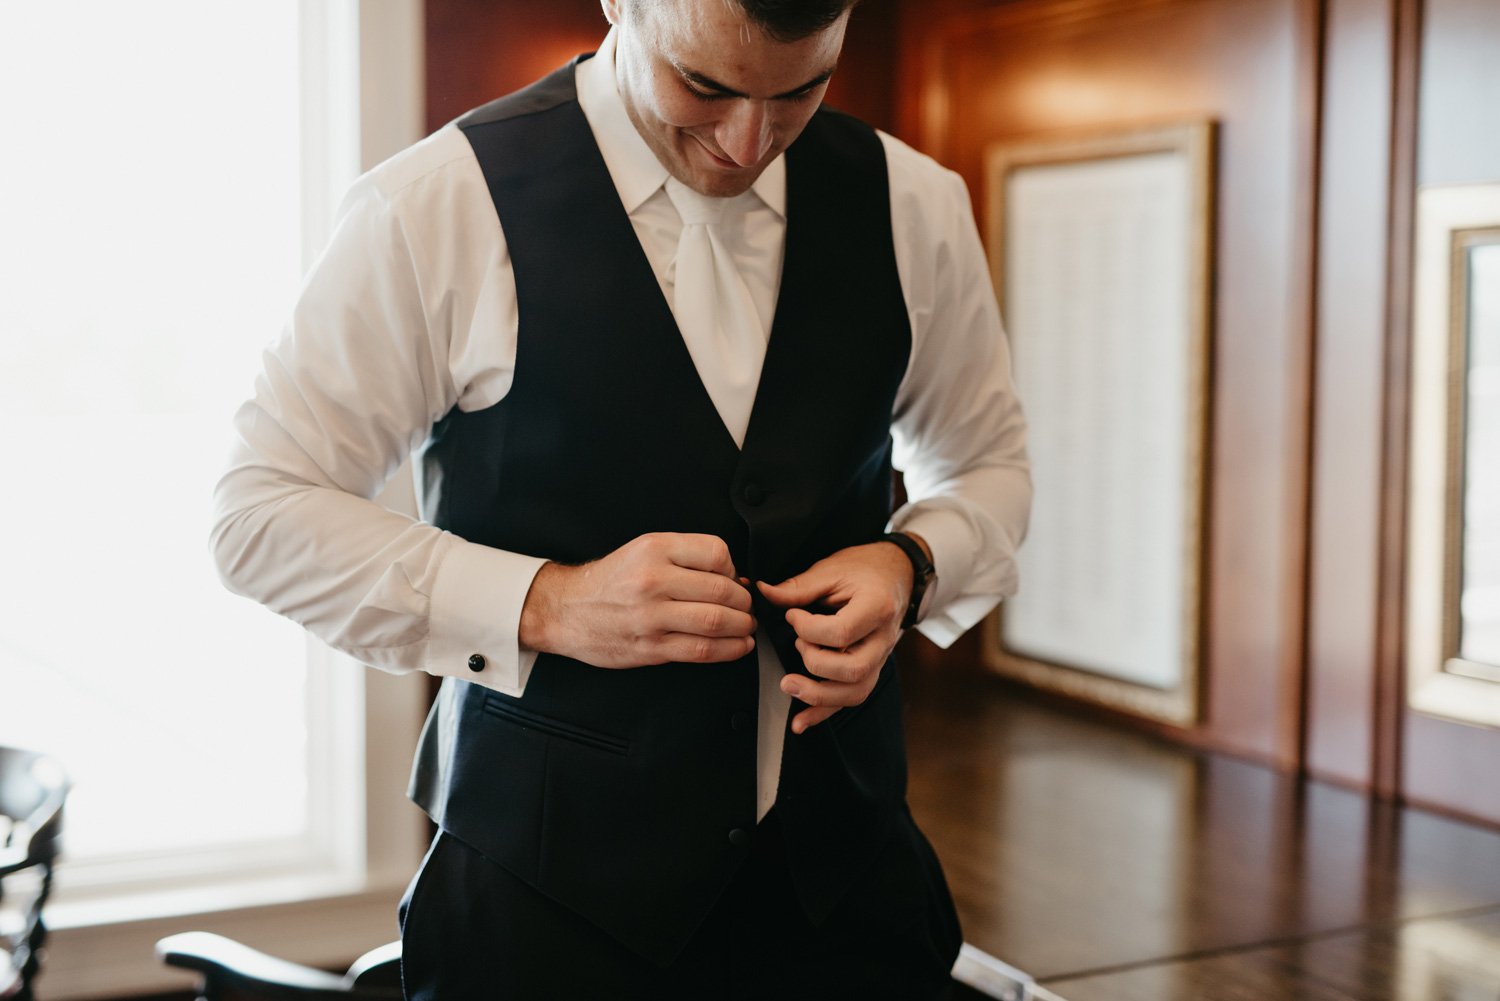 Groom getting ready during wedding day